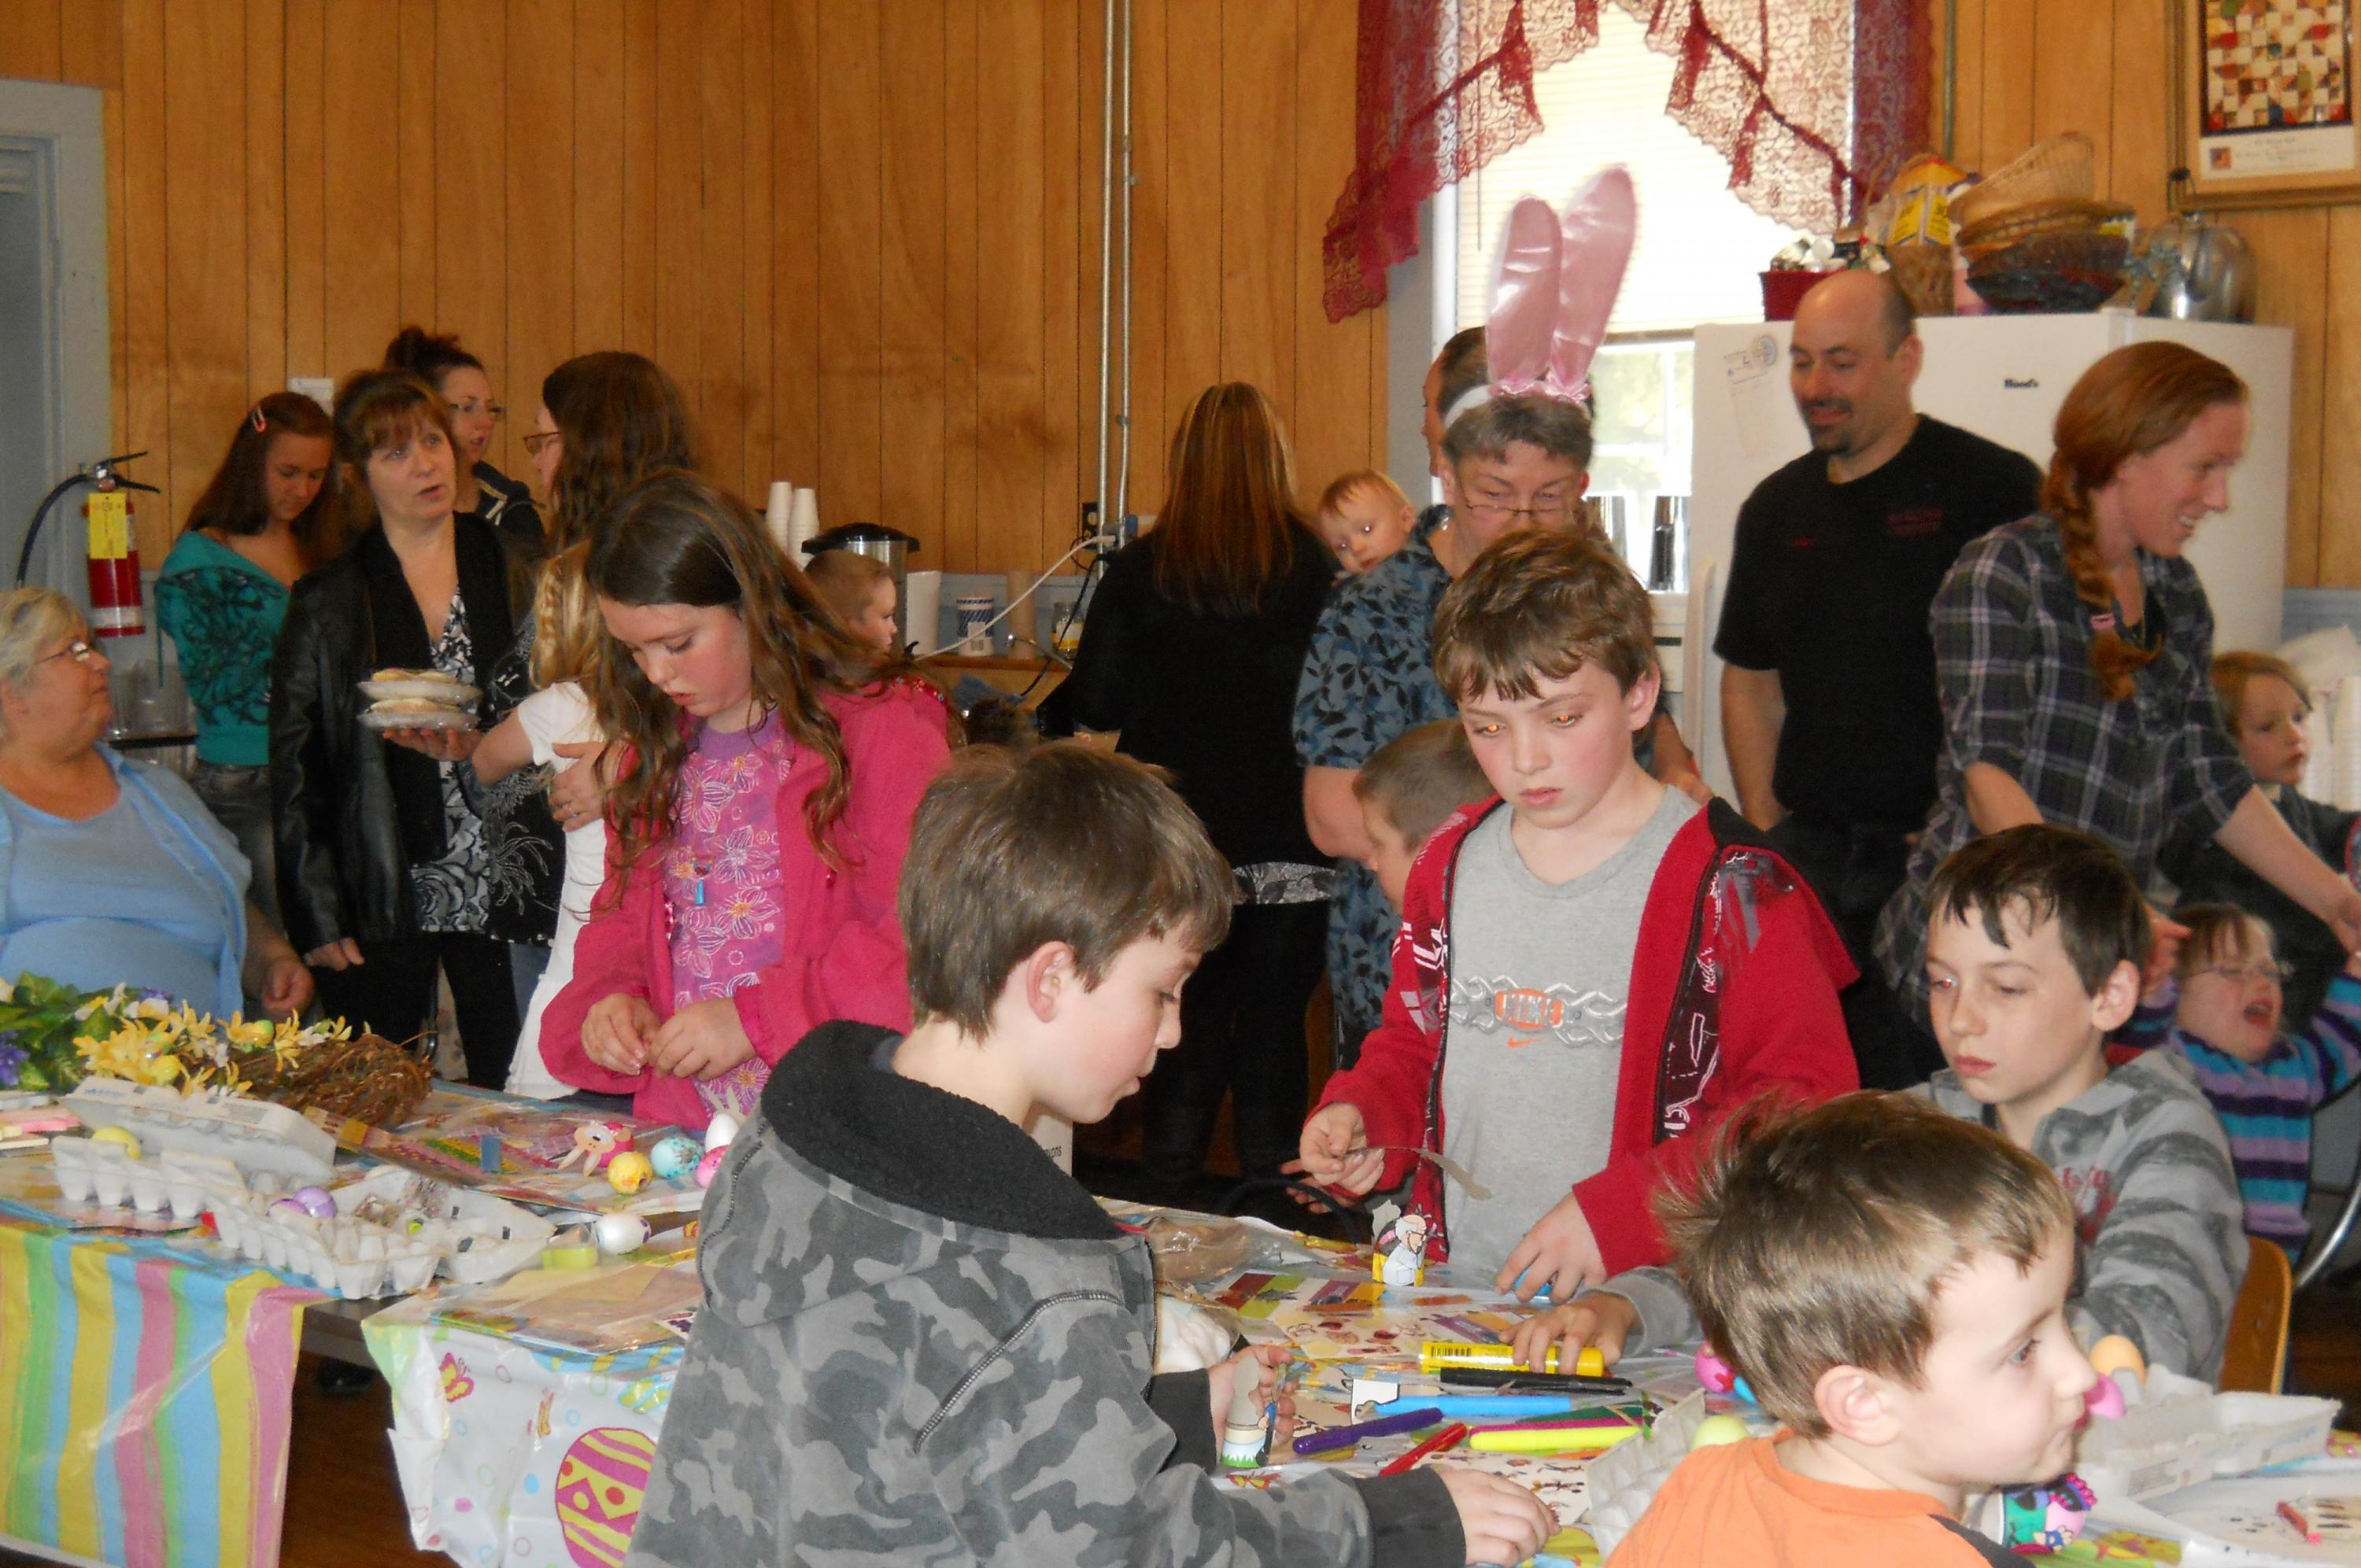 several children and adults painting easter eggs and making crafts